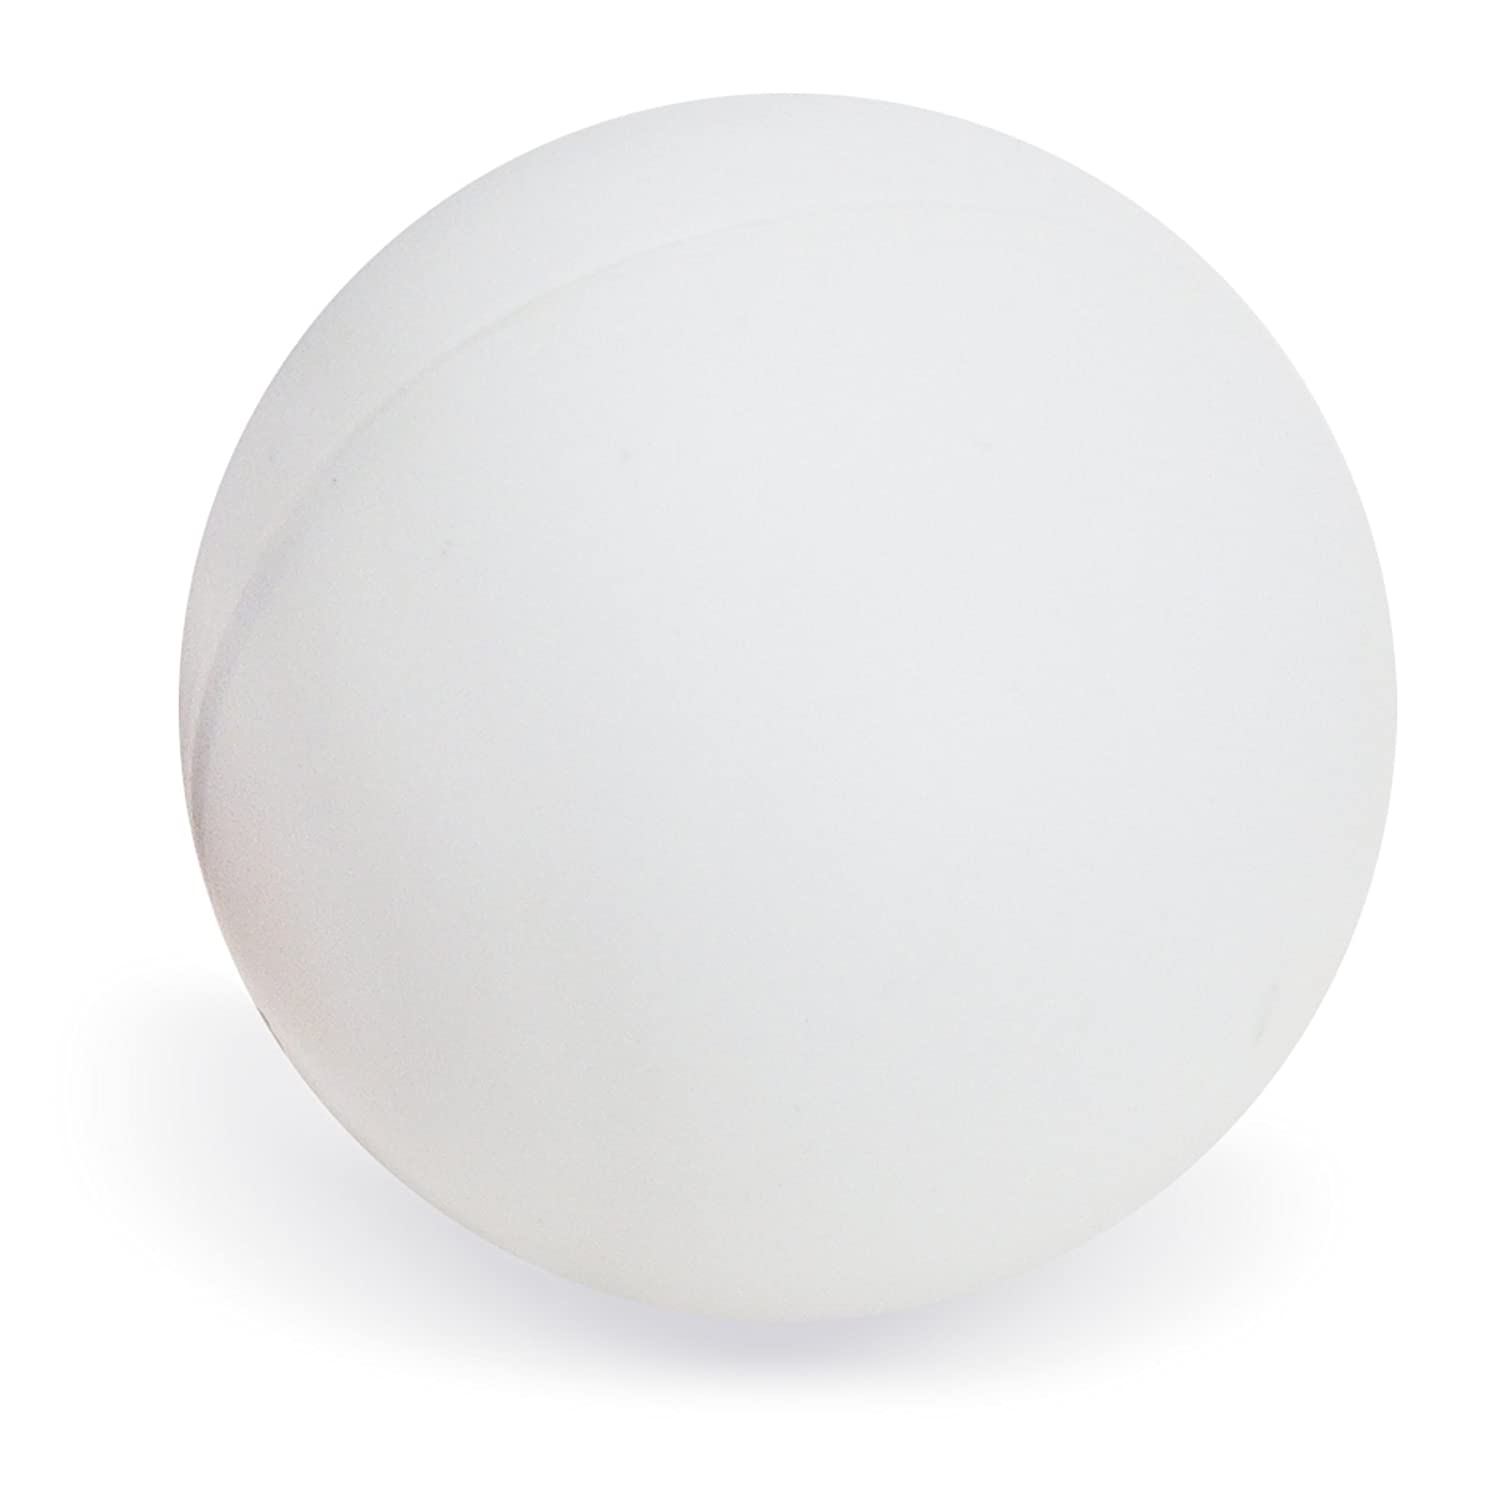 Ping Pong Balls White (1-Pack of 12)